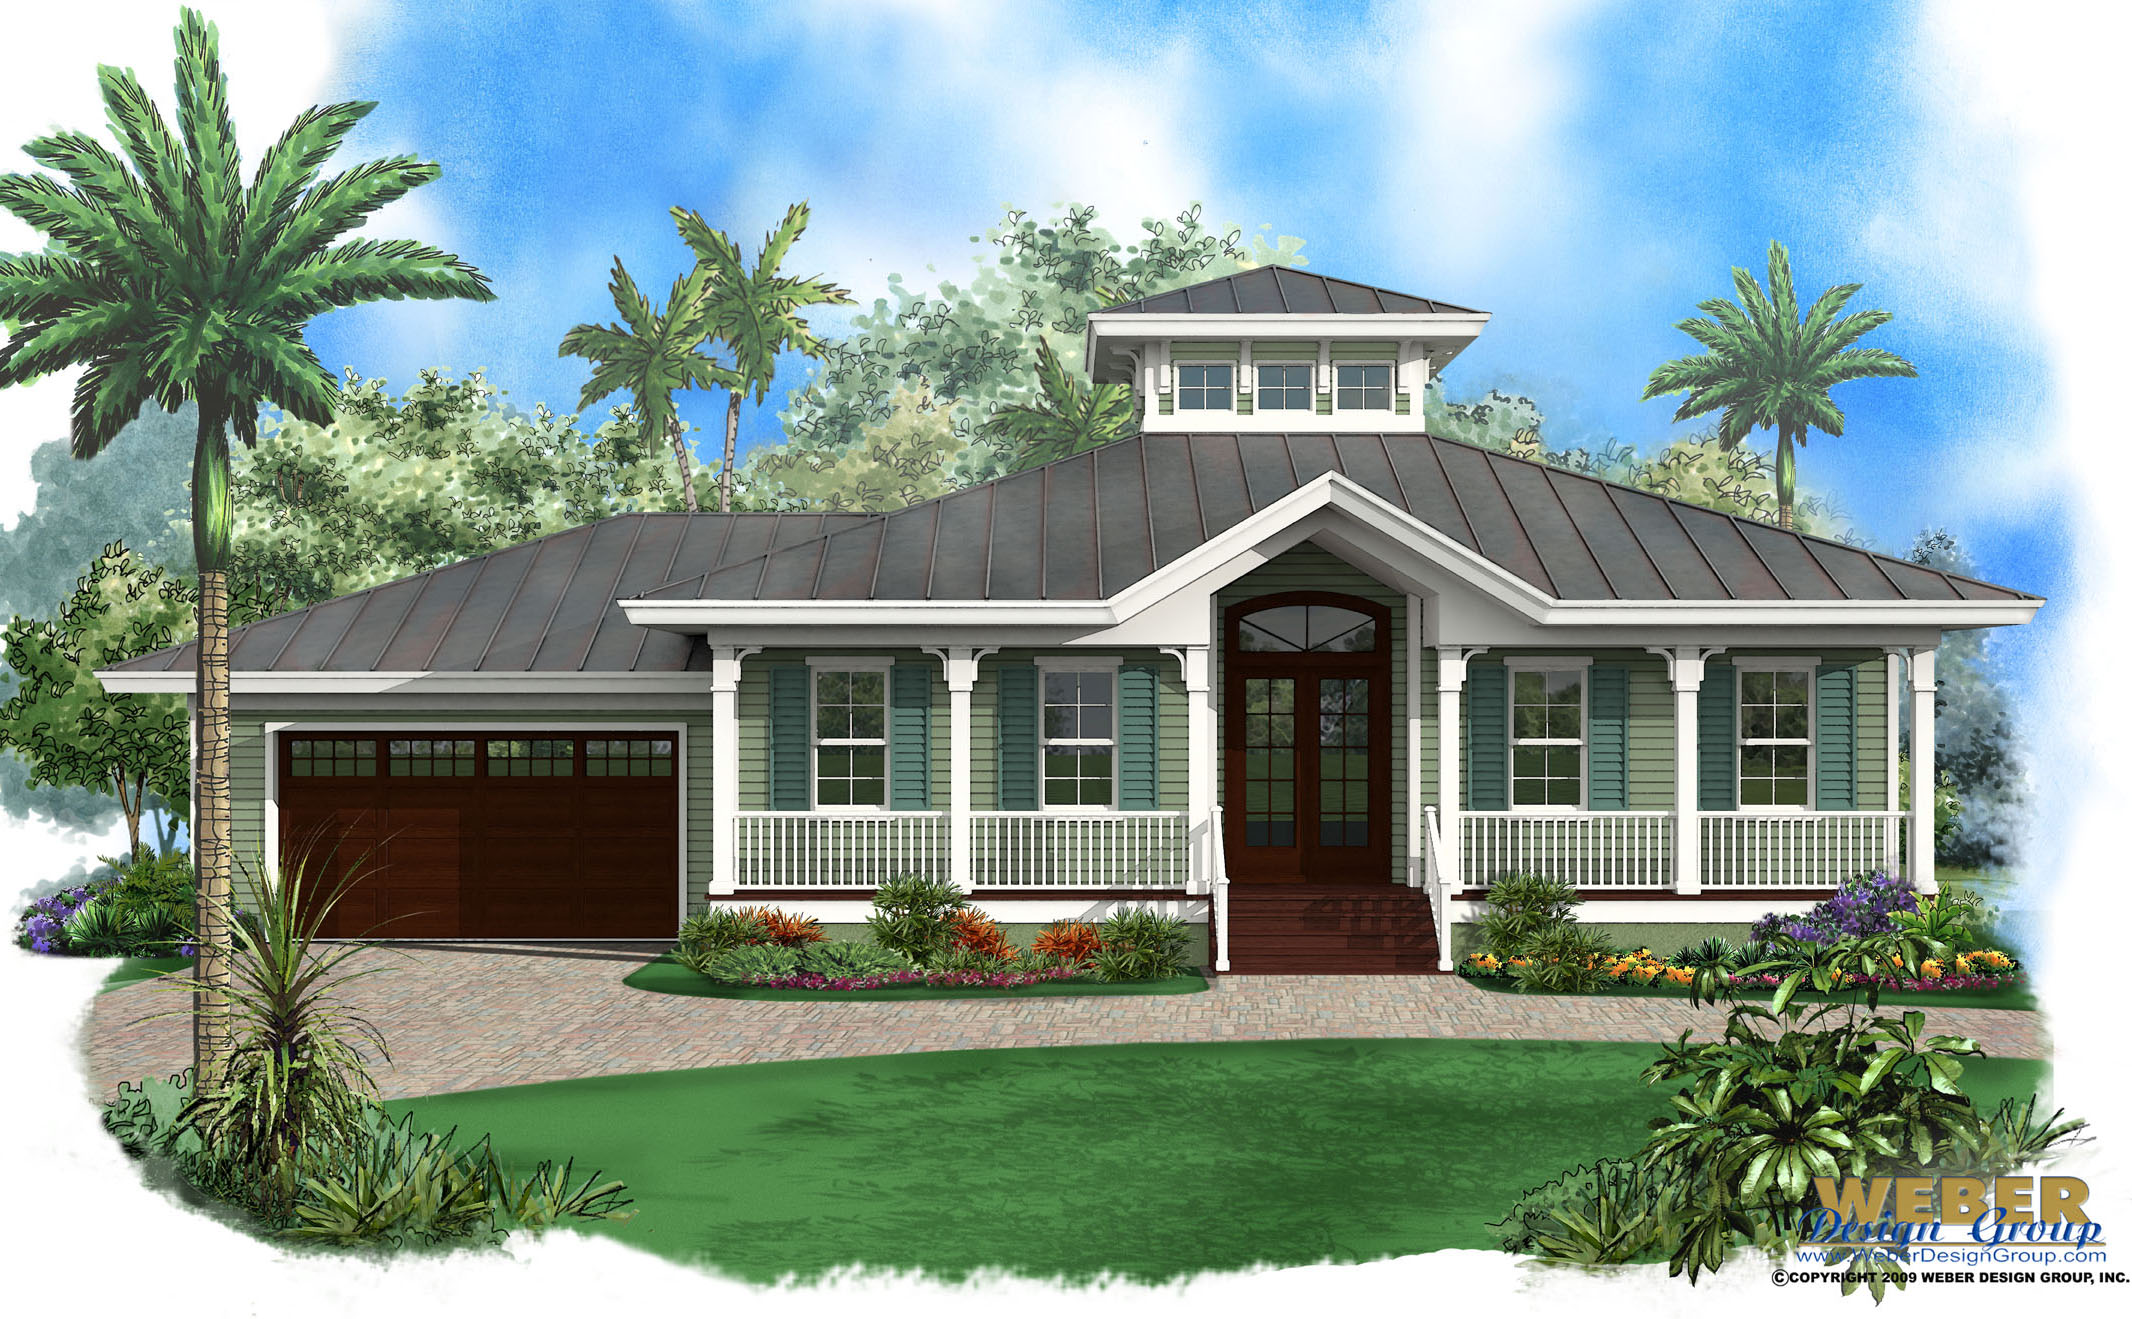 Key west house plans key west island style home floor plans for Seaside cottage plans